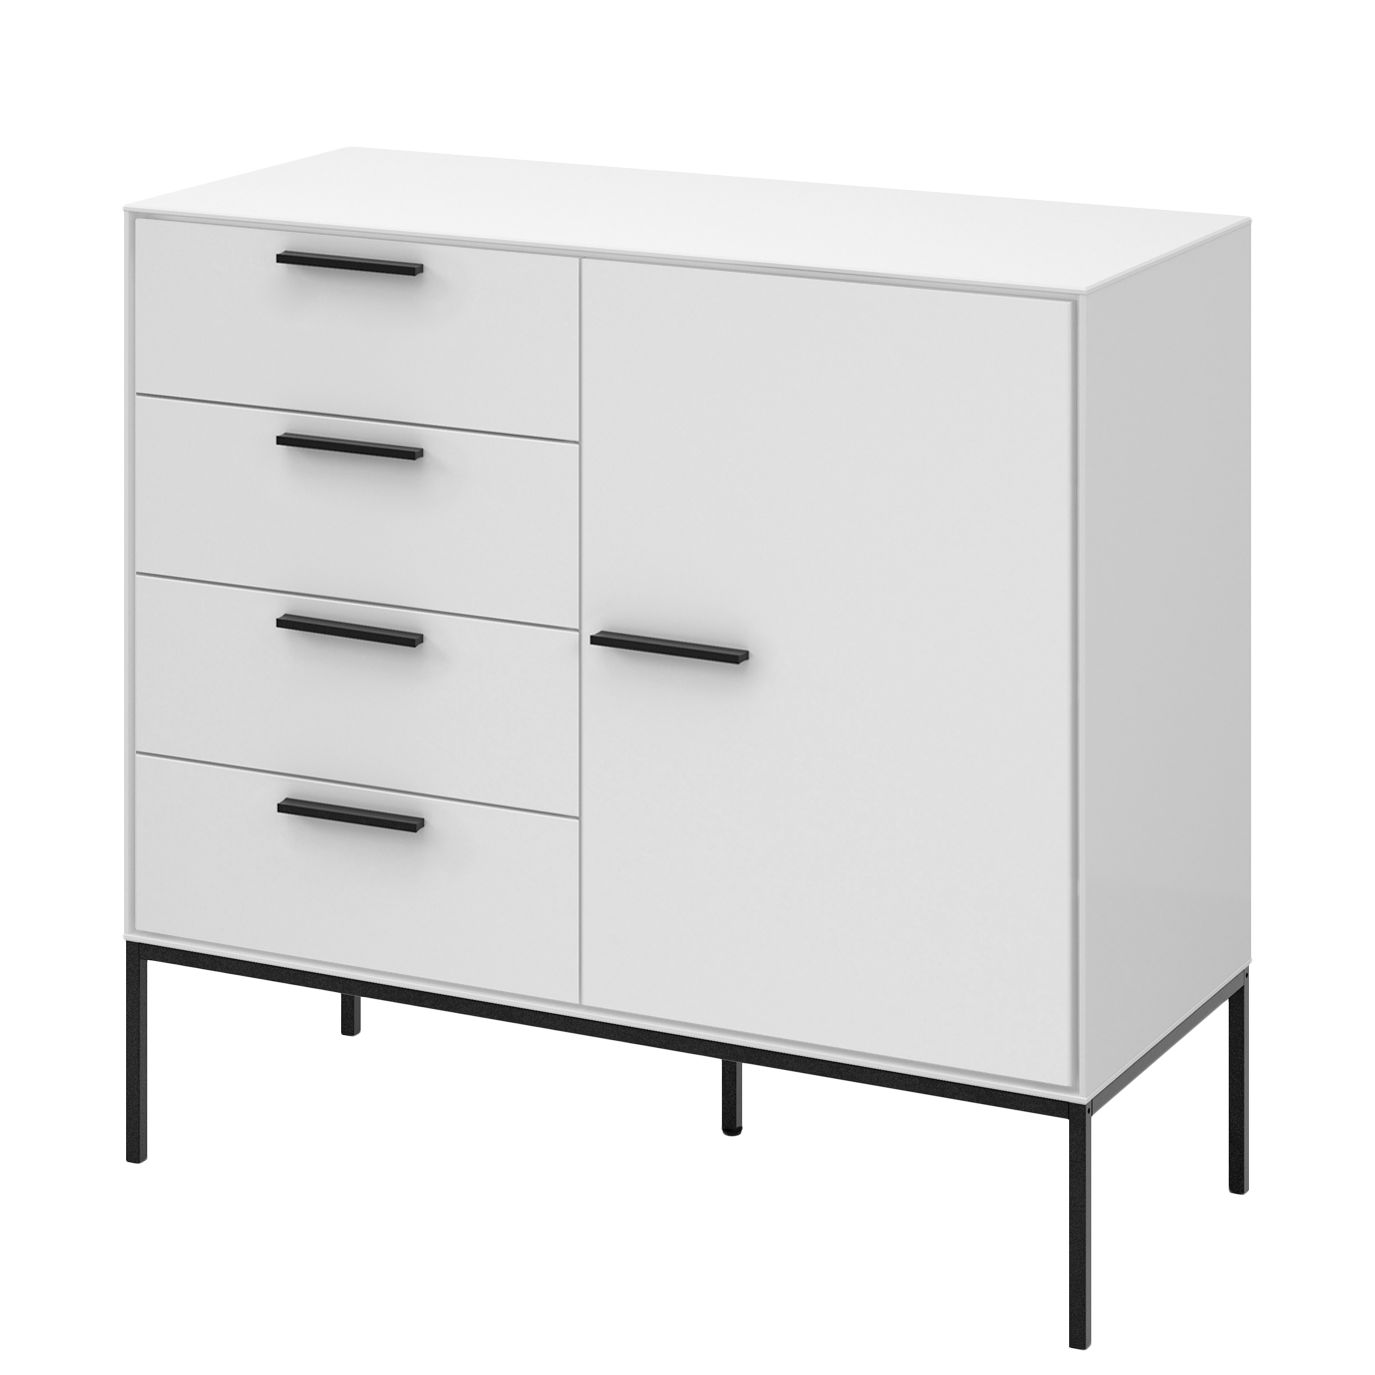 commode slimline iii blanc noir steens meubles en ligne. Black Bedroom Furniture Sets. Home Design Ideas